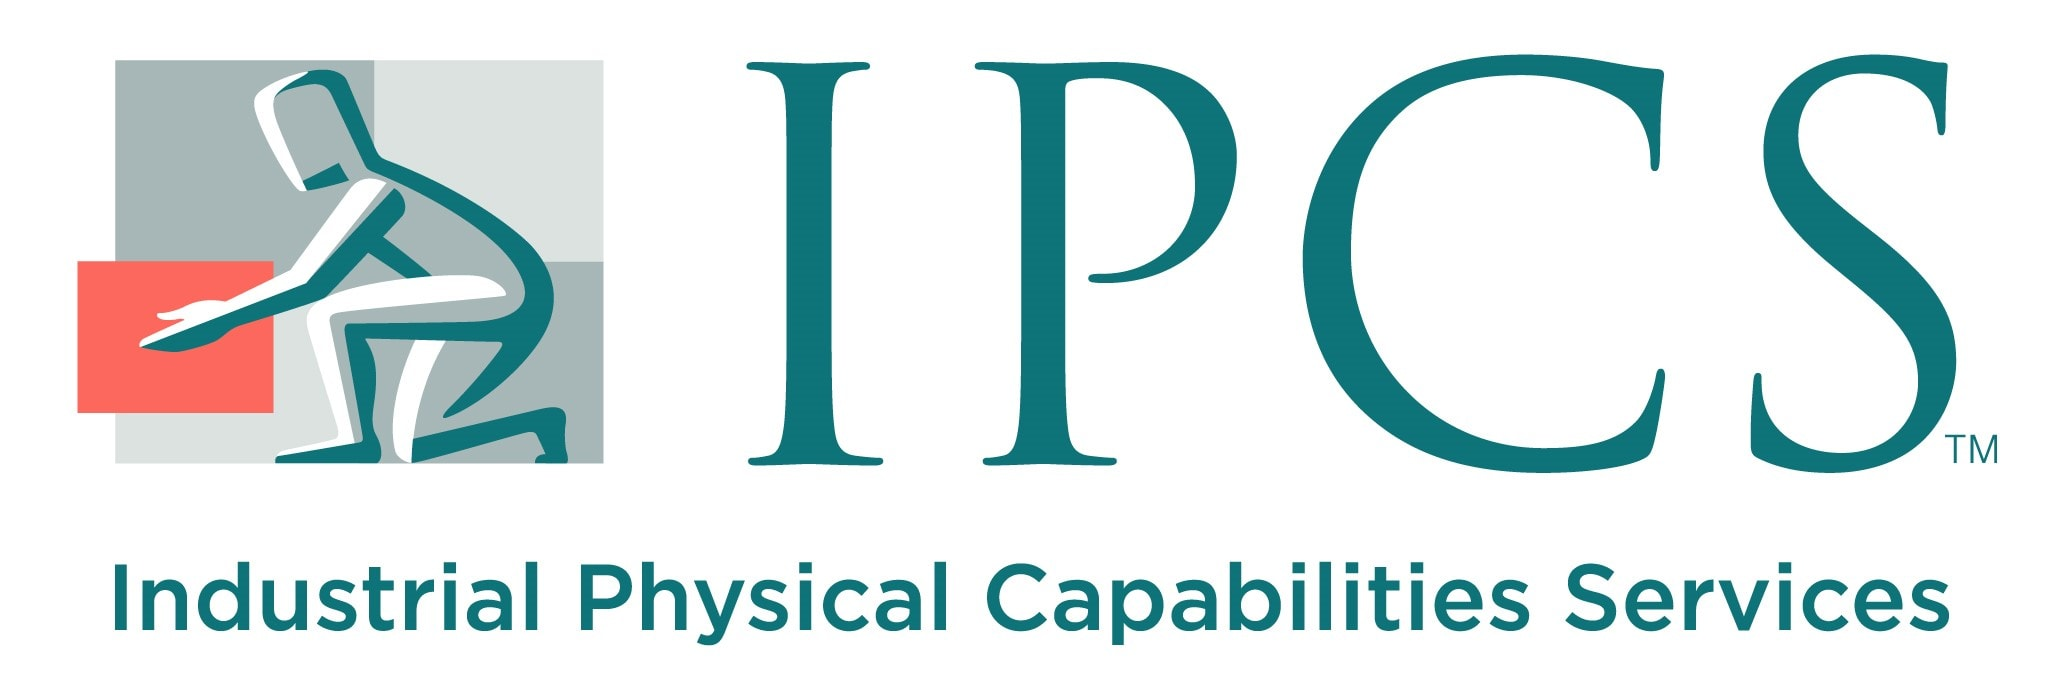 Industrial Physical Capabilities Services